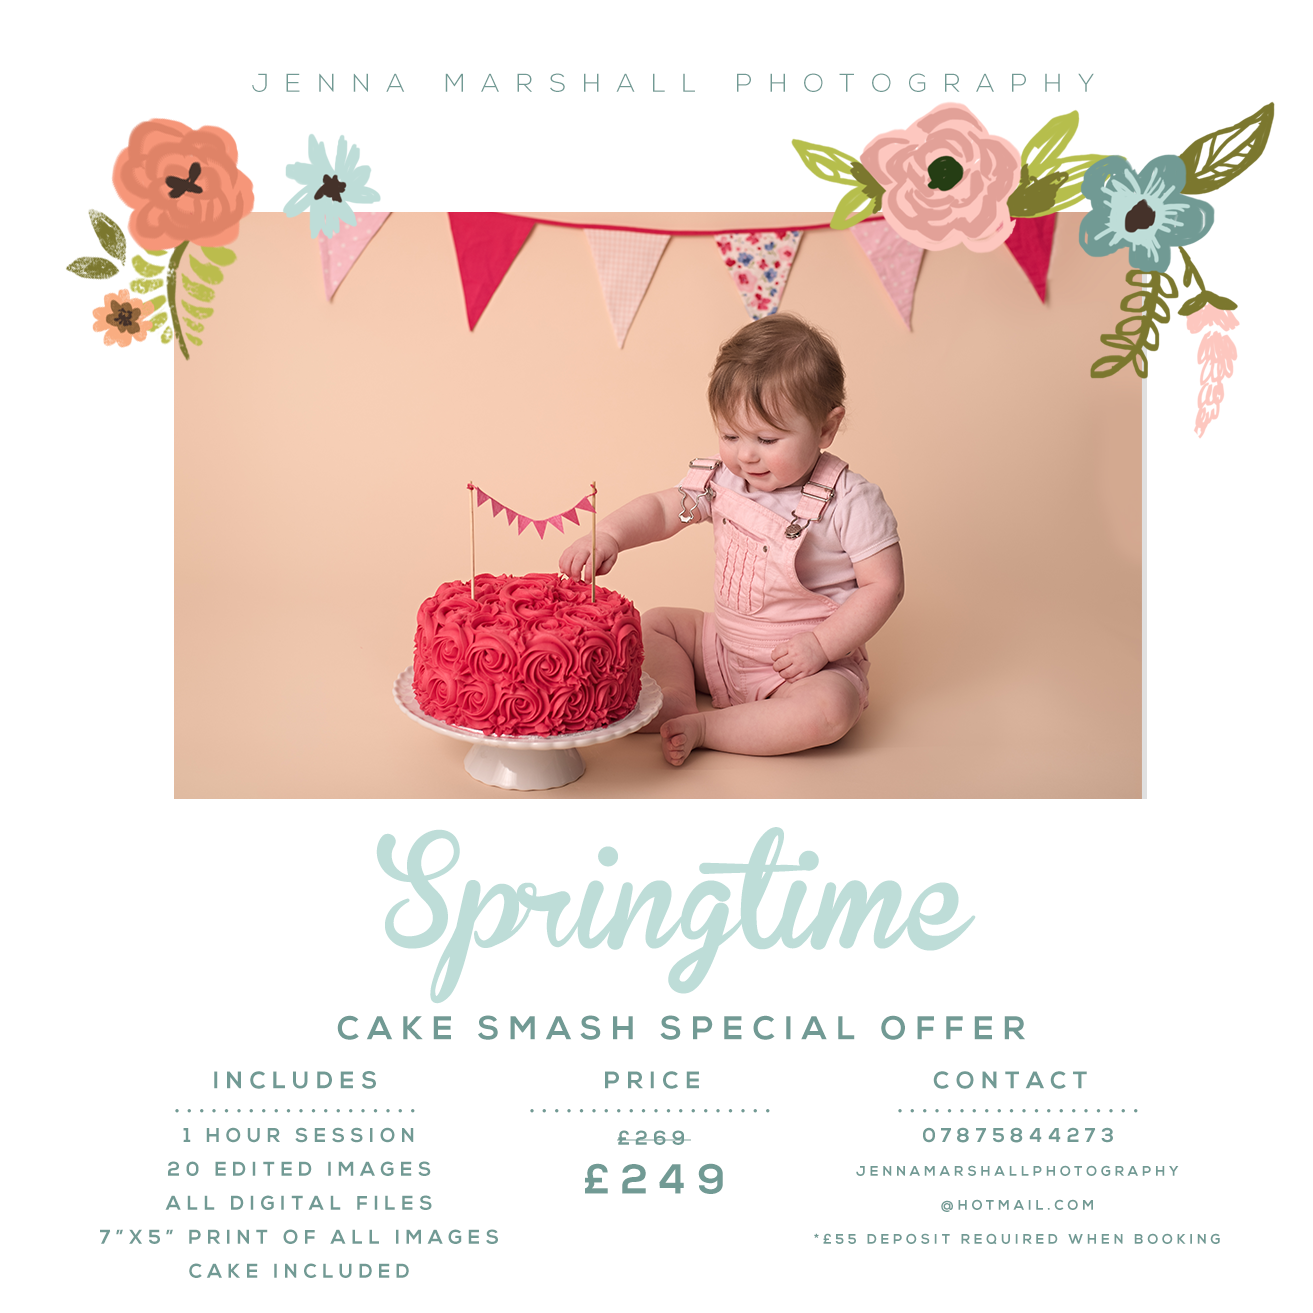 SPRING--CAKE-SMASH-jenna-marshall-photography-stevenage